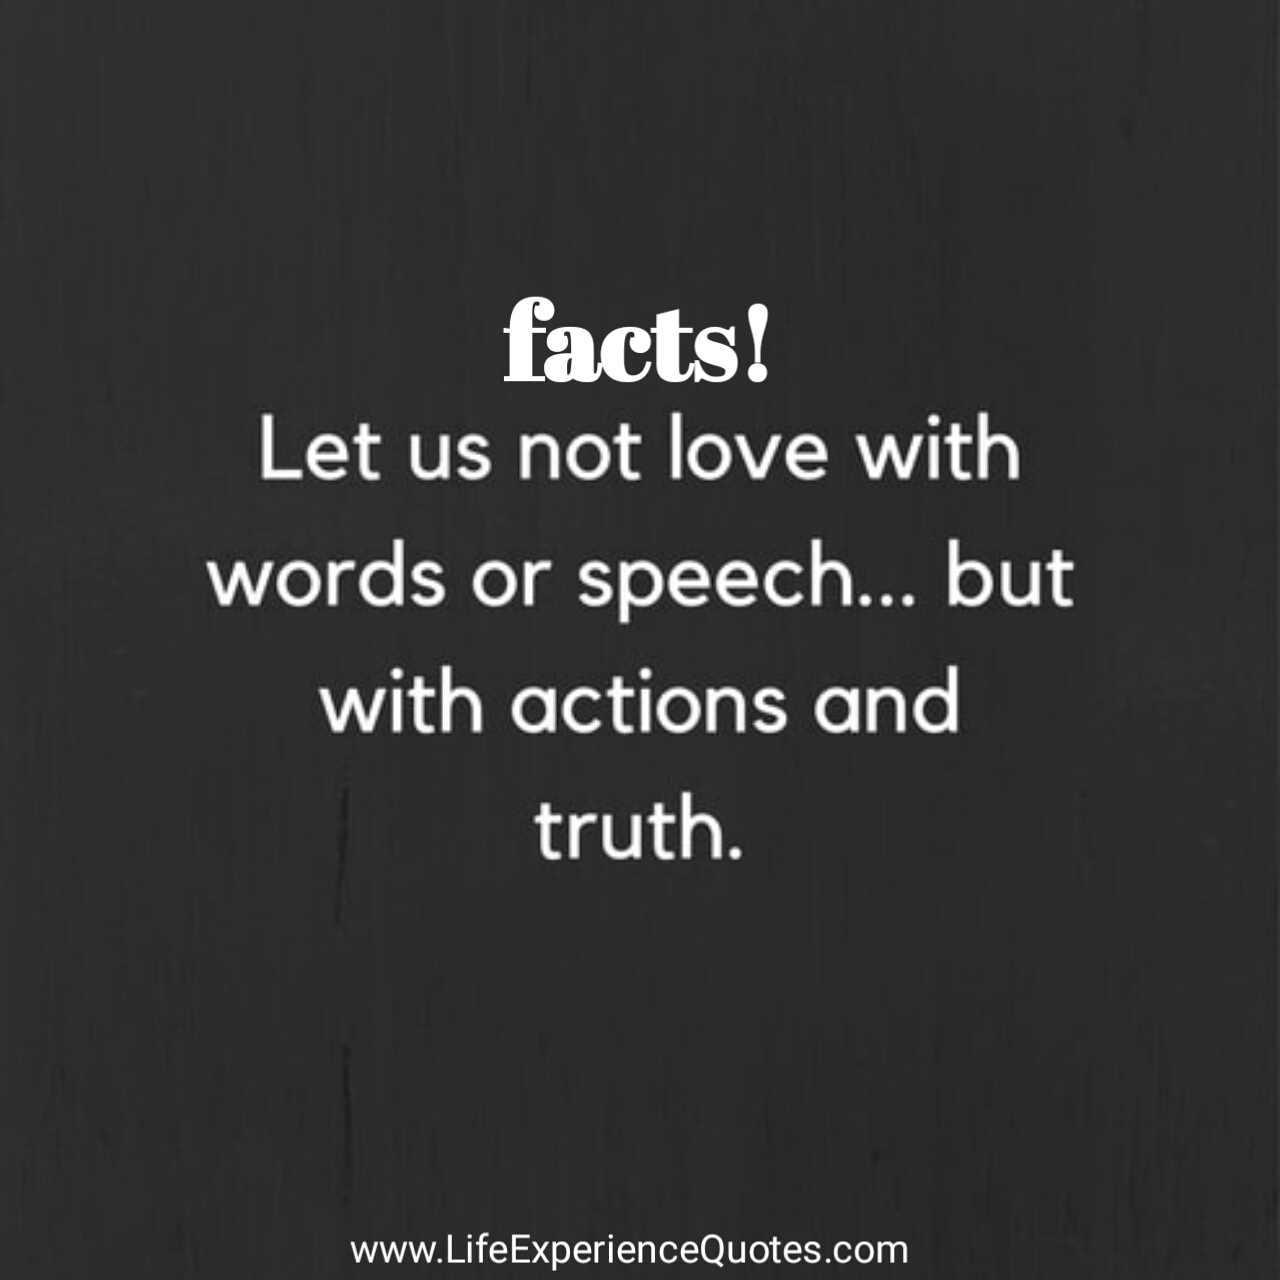 Quotes Real Life Experience This Is Real Fact Lets Not Love With Words S Chbut